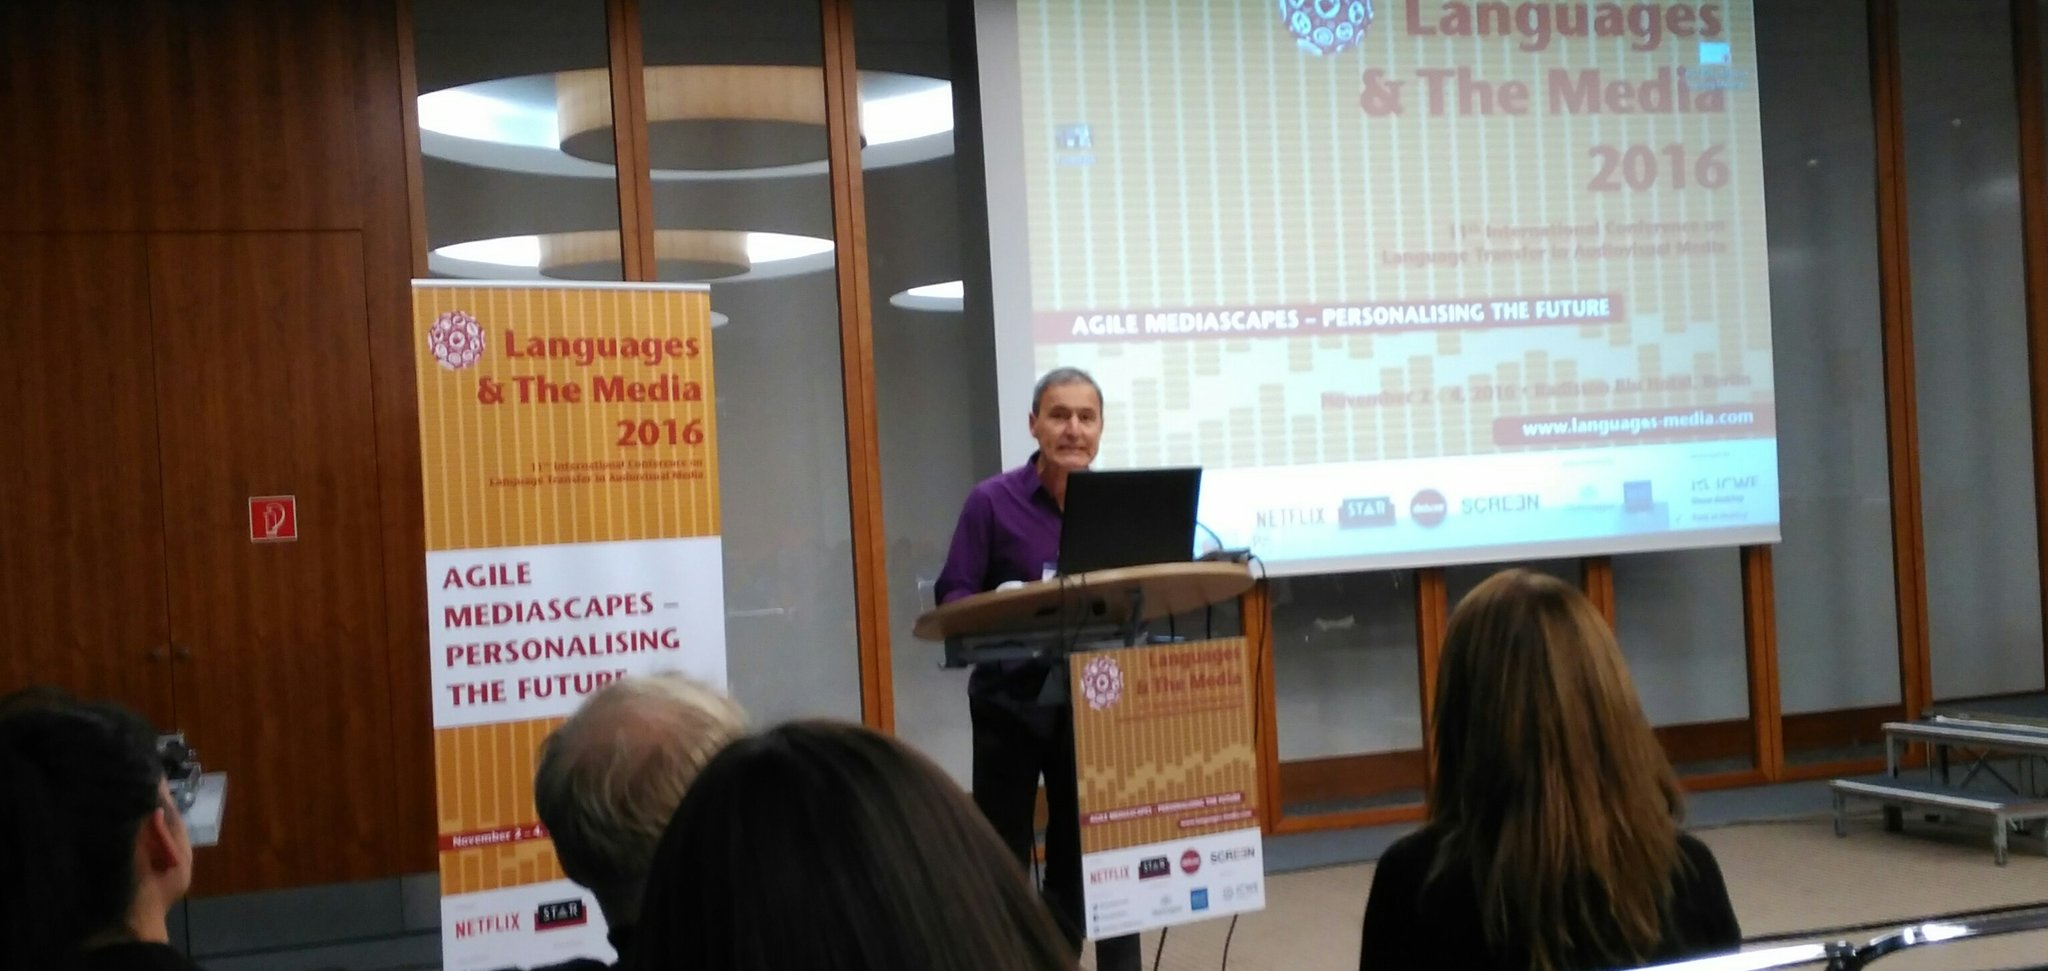 Here is the closing speech of #languagesmedia in Berlin by @JorgeDiazCintas from @CenTraS_UCL. https://t.co/kLMxxEm7yC